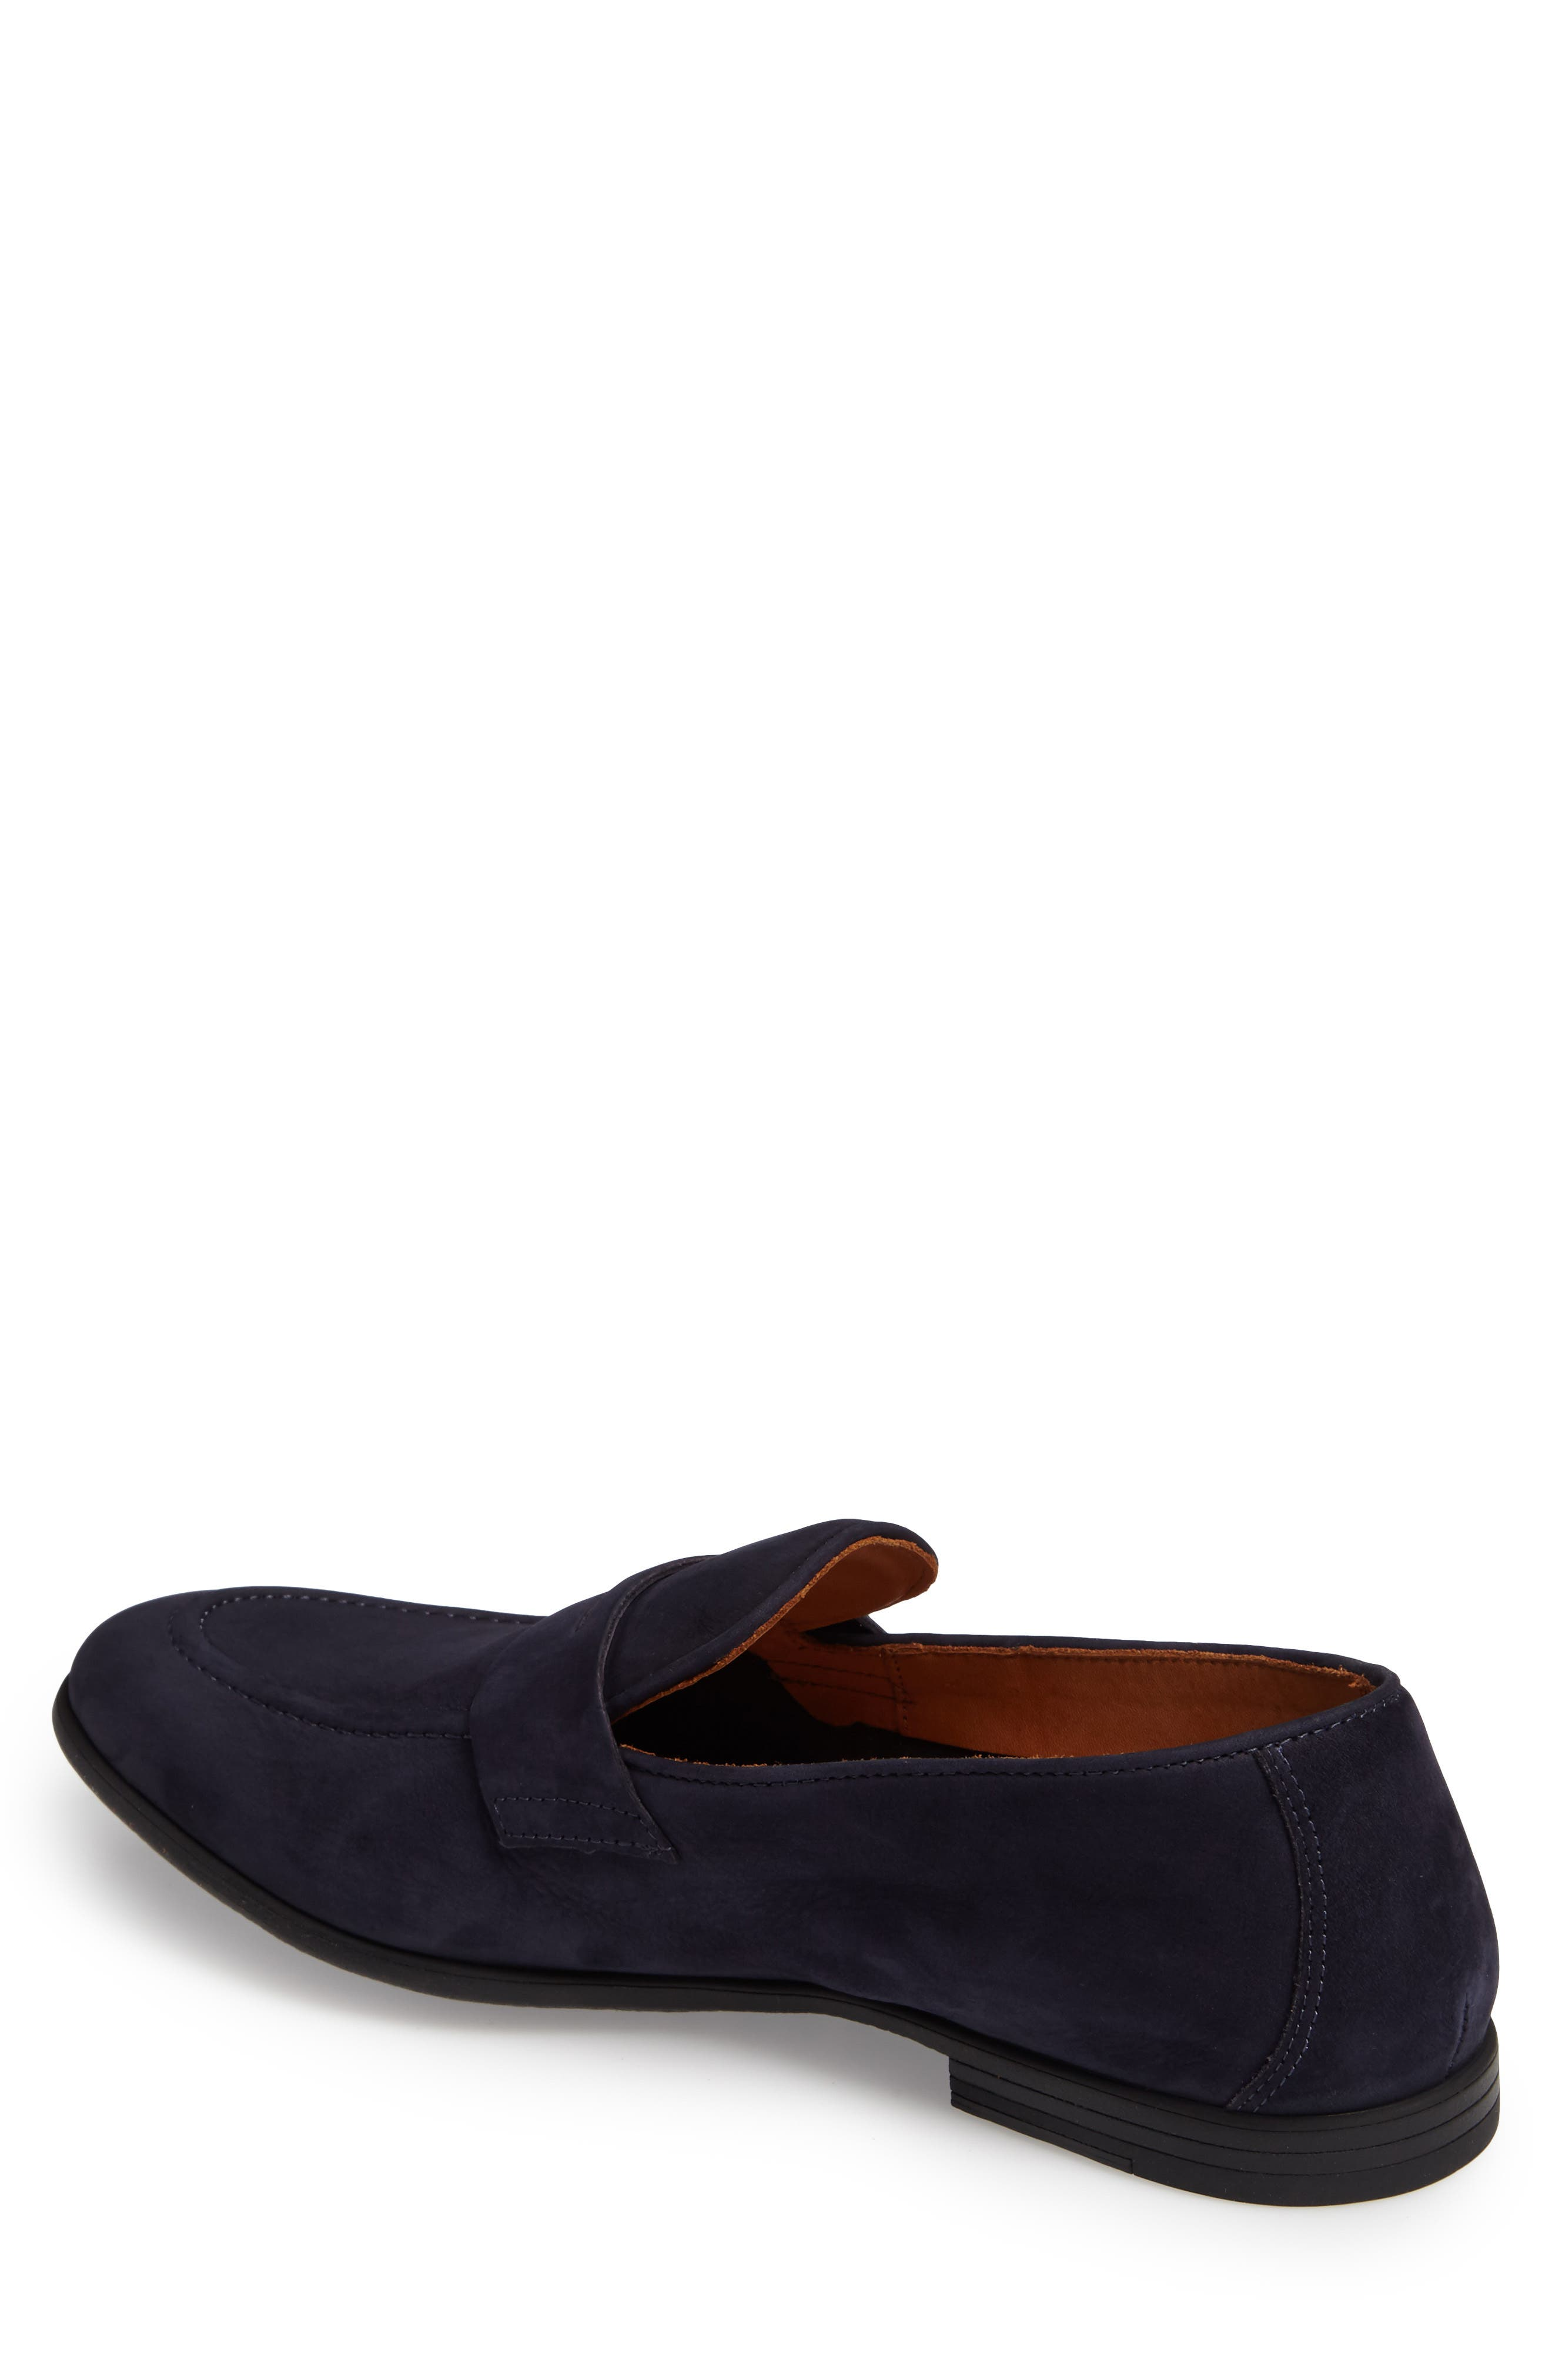 Dillon Penny Loafer,                             Alternate thumbnail 2, color,                             Marino Leather